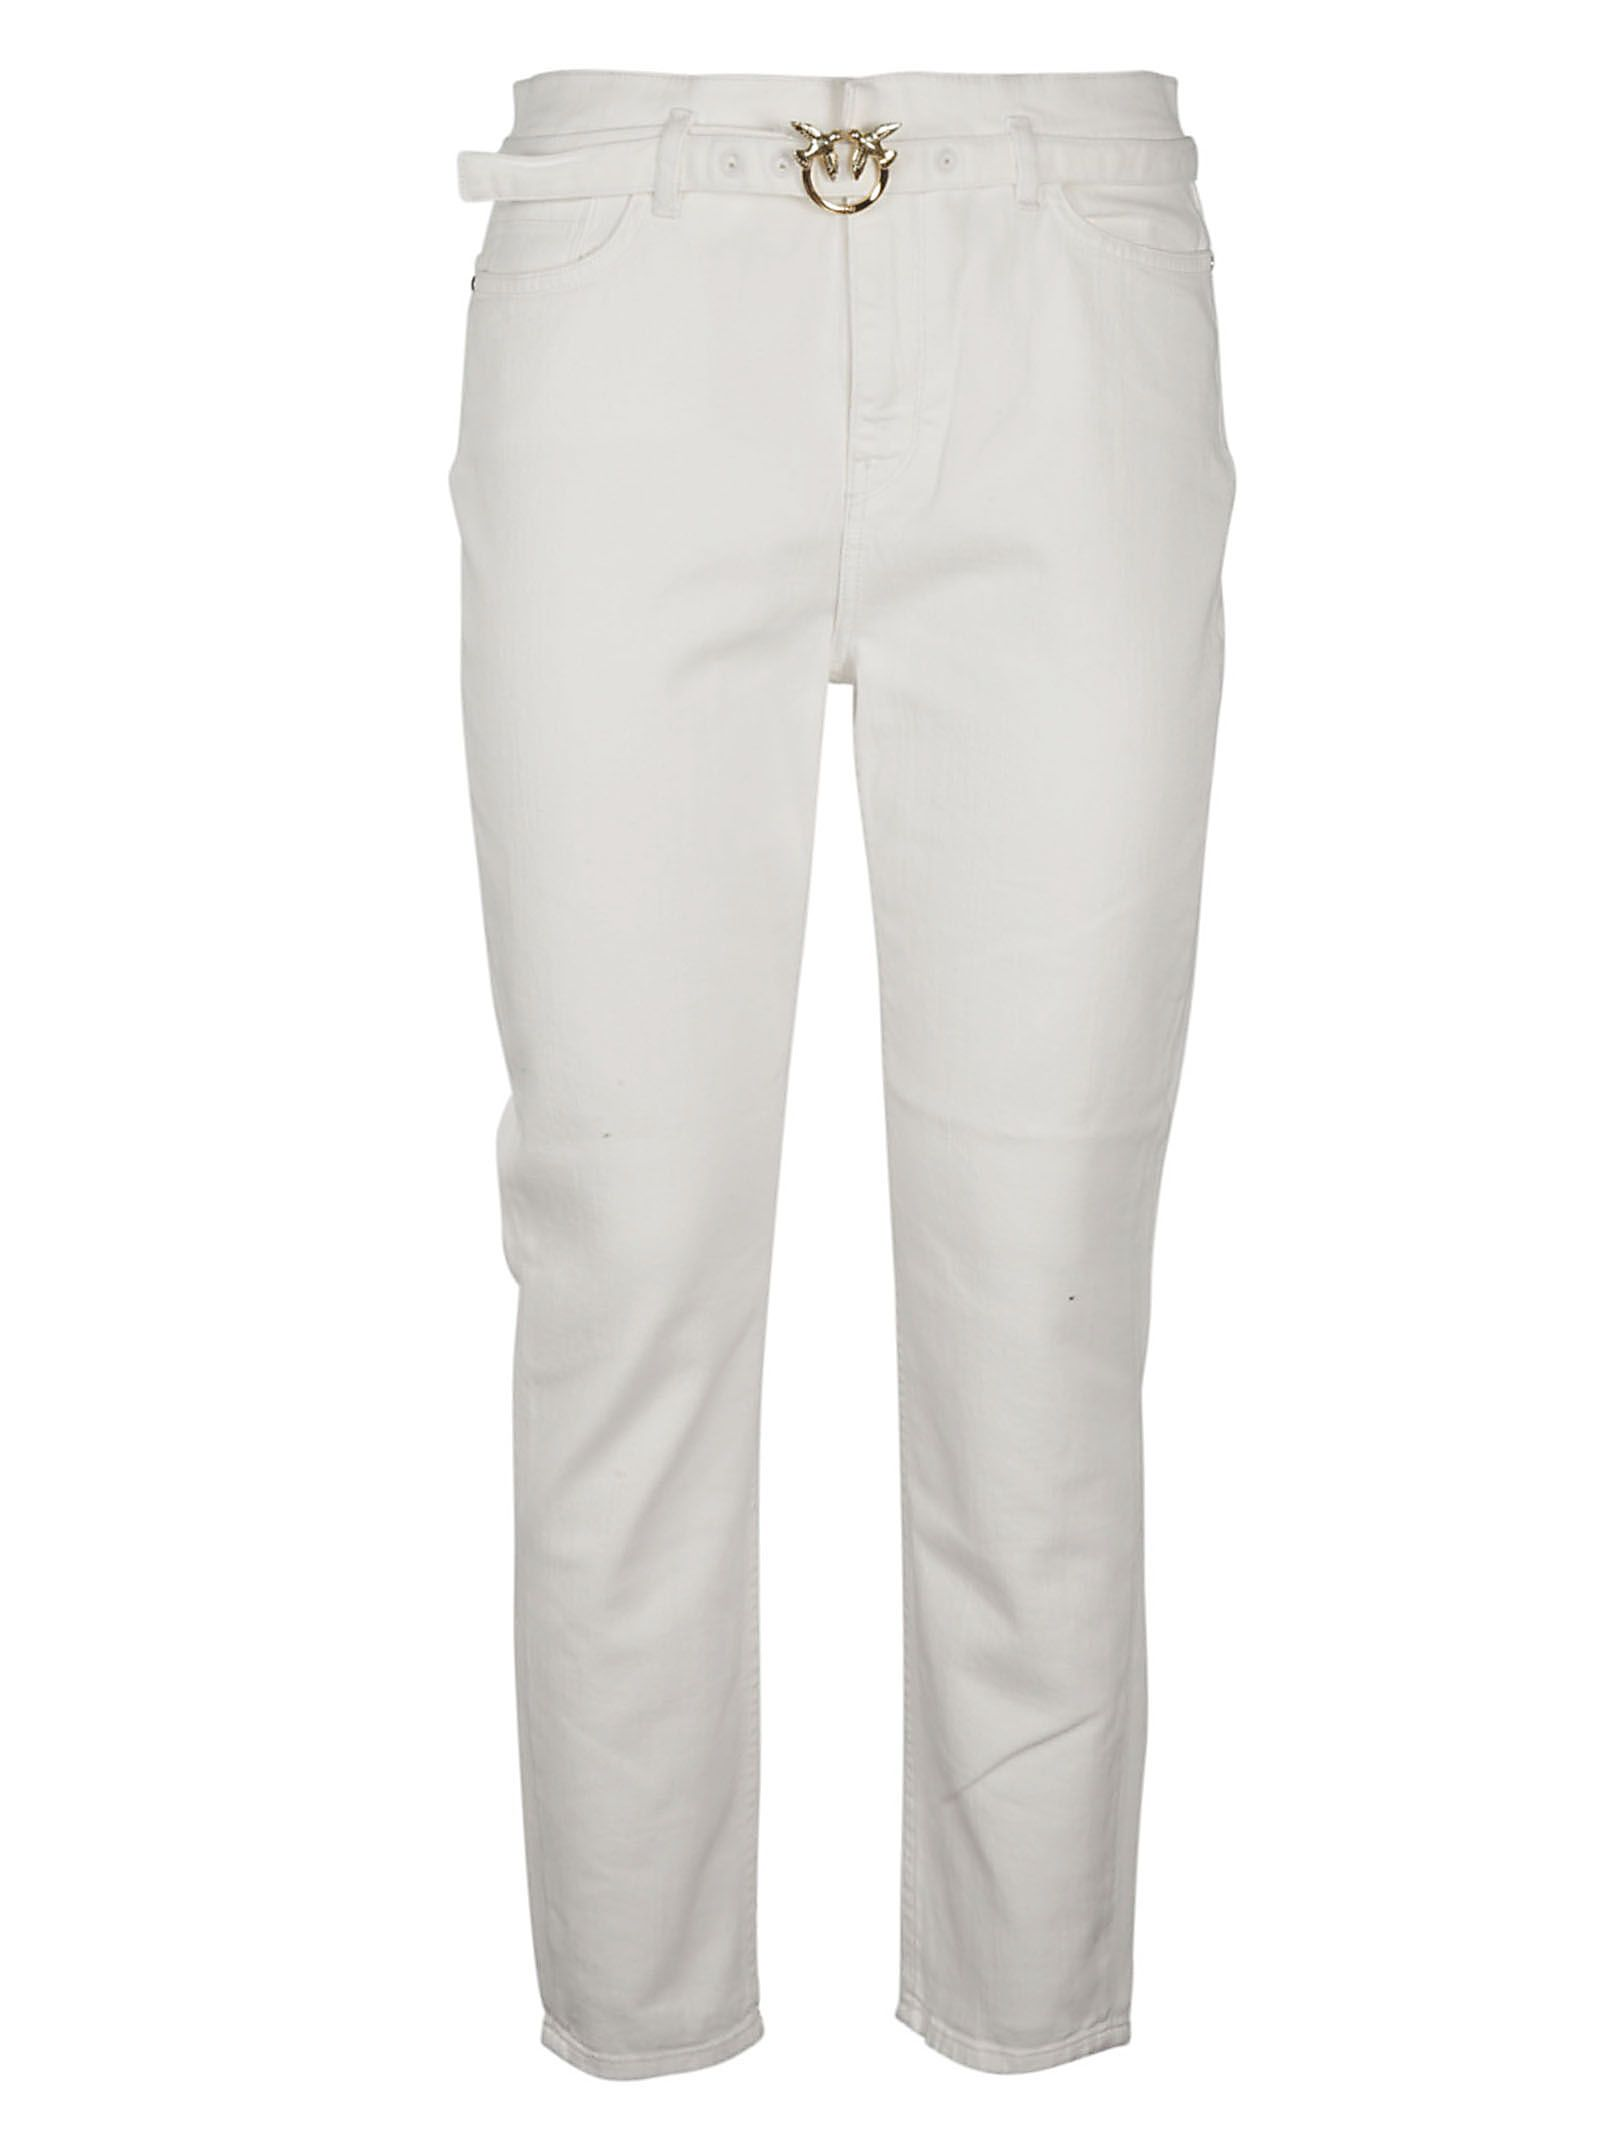 Pinko Cottons PINKO WOMEN'S 1J10KNY62NZ08 WHITE OTHER MATERIALS JEANS